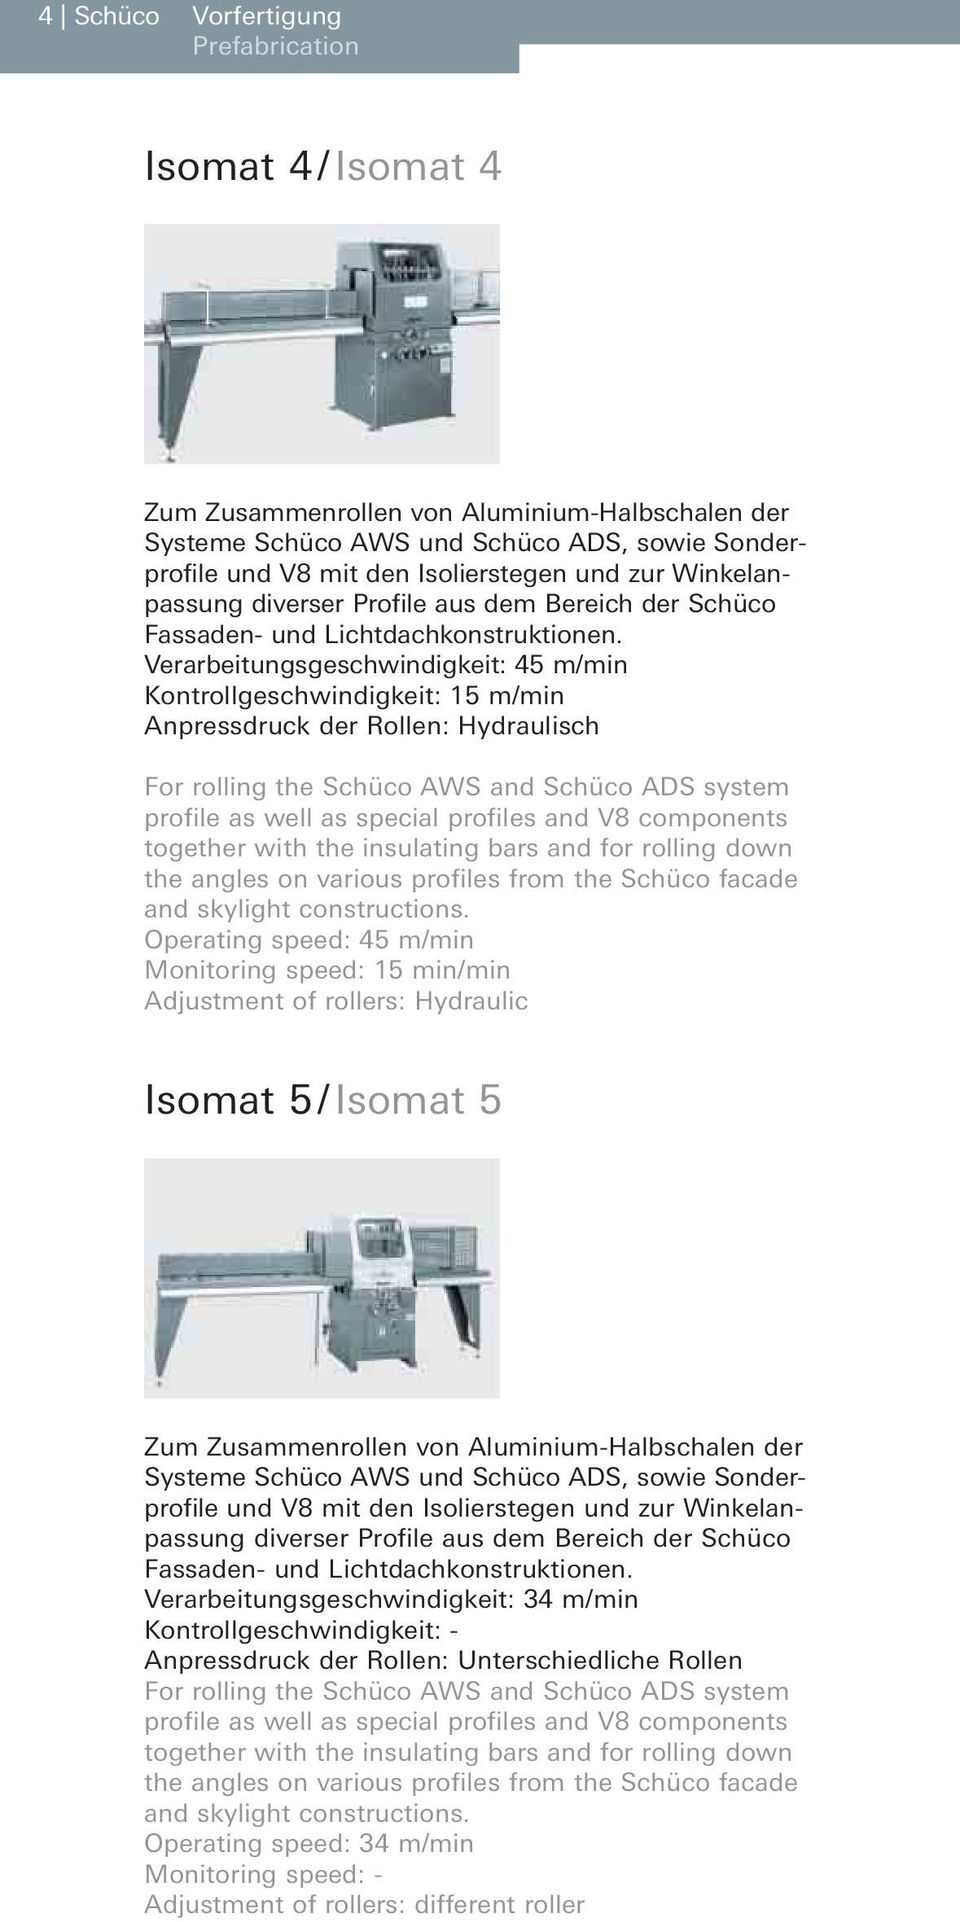 Verarbeitungsgeschwindigkeit: 45 m/min Kontrollgeschwindigkeit: 15 m/min Anpressdruck der Rollen: Hydraulisch For rolling the Schüco AWS and Schüco ADS system profile as well as special profiles and